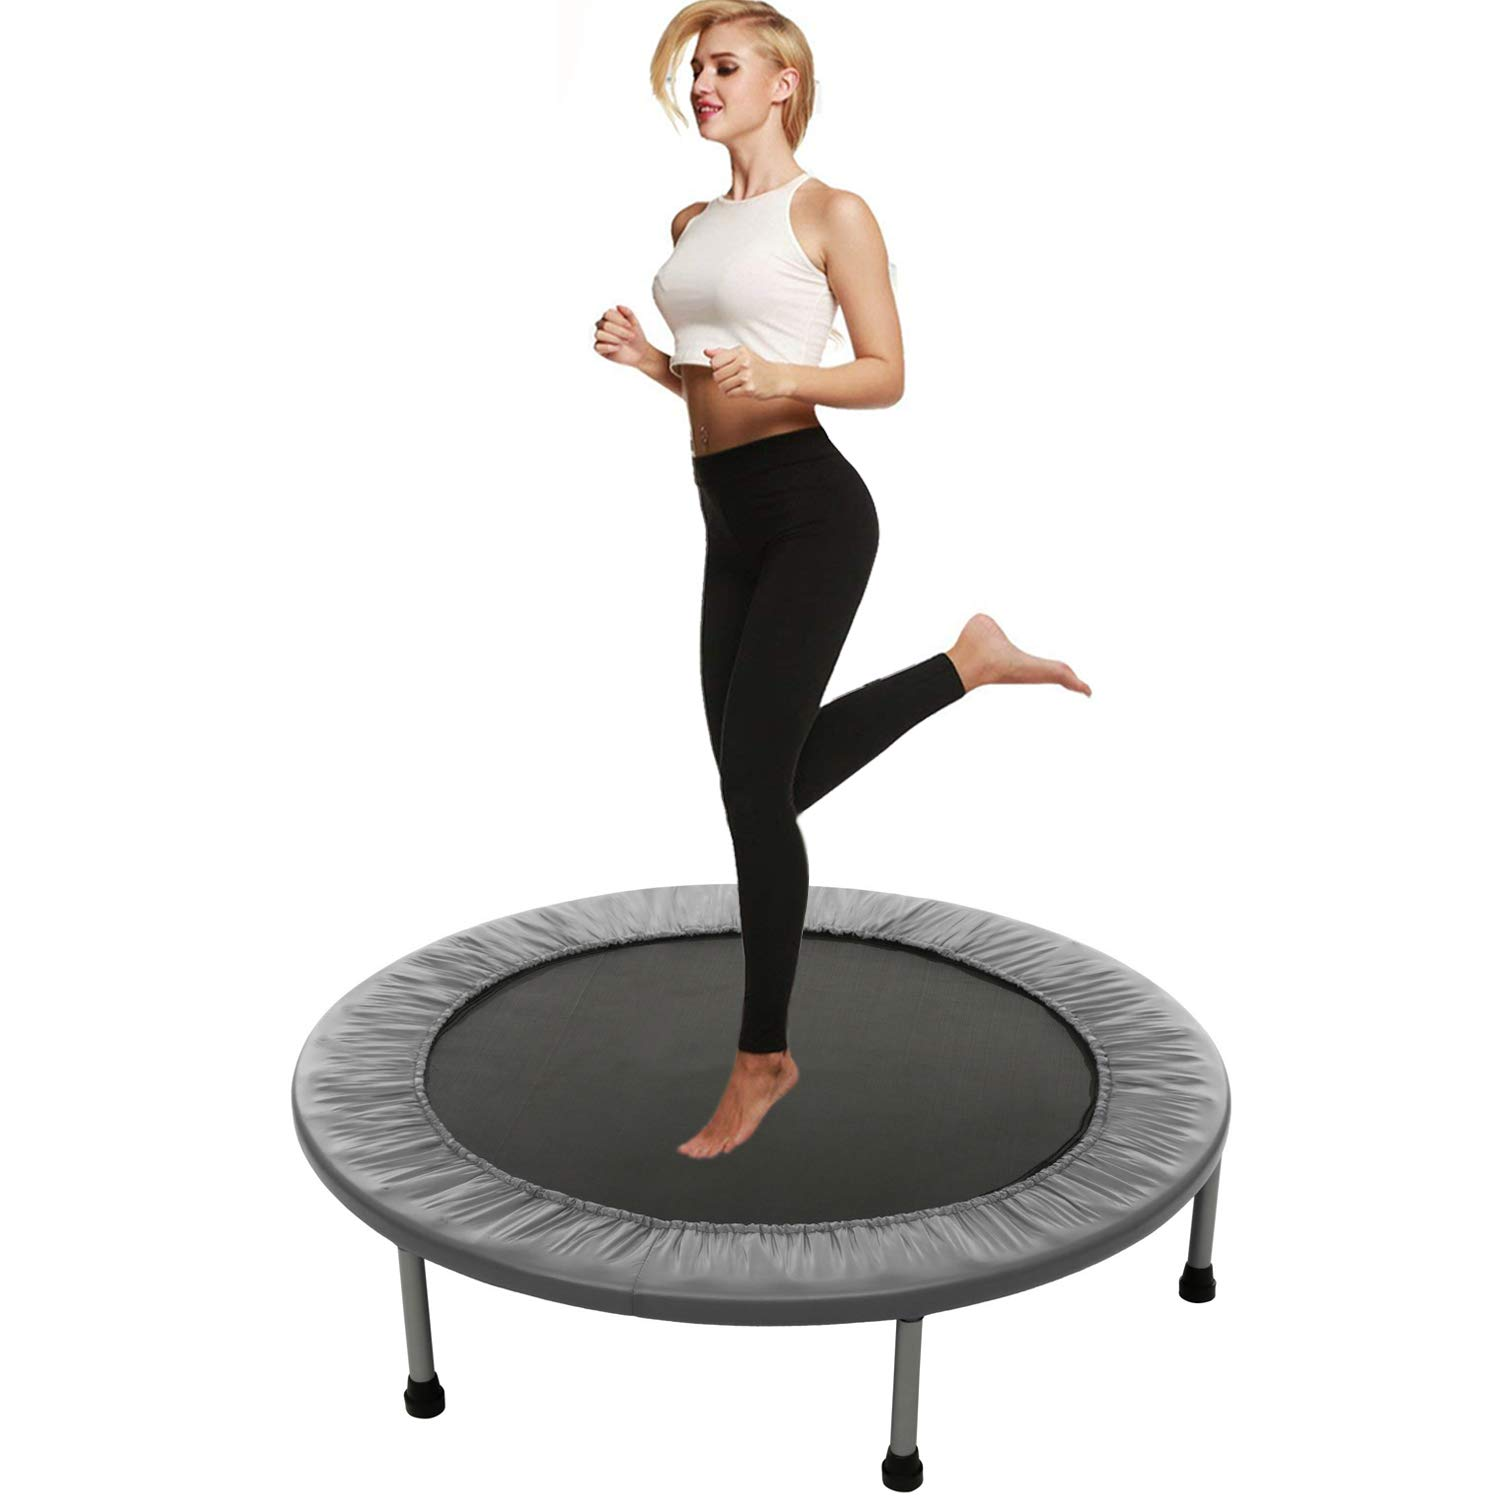 Balanu 40 Inch Mini Exercise Trampoline for Adults or Kids - Indoor Fitness Rebounder Trampoline with Safety Pad | Max. Load 220LBS (Gray-40In-Foldable Once)